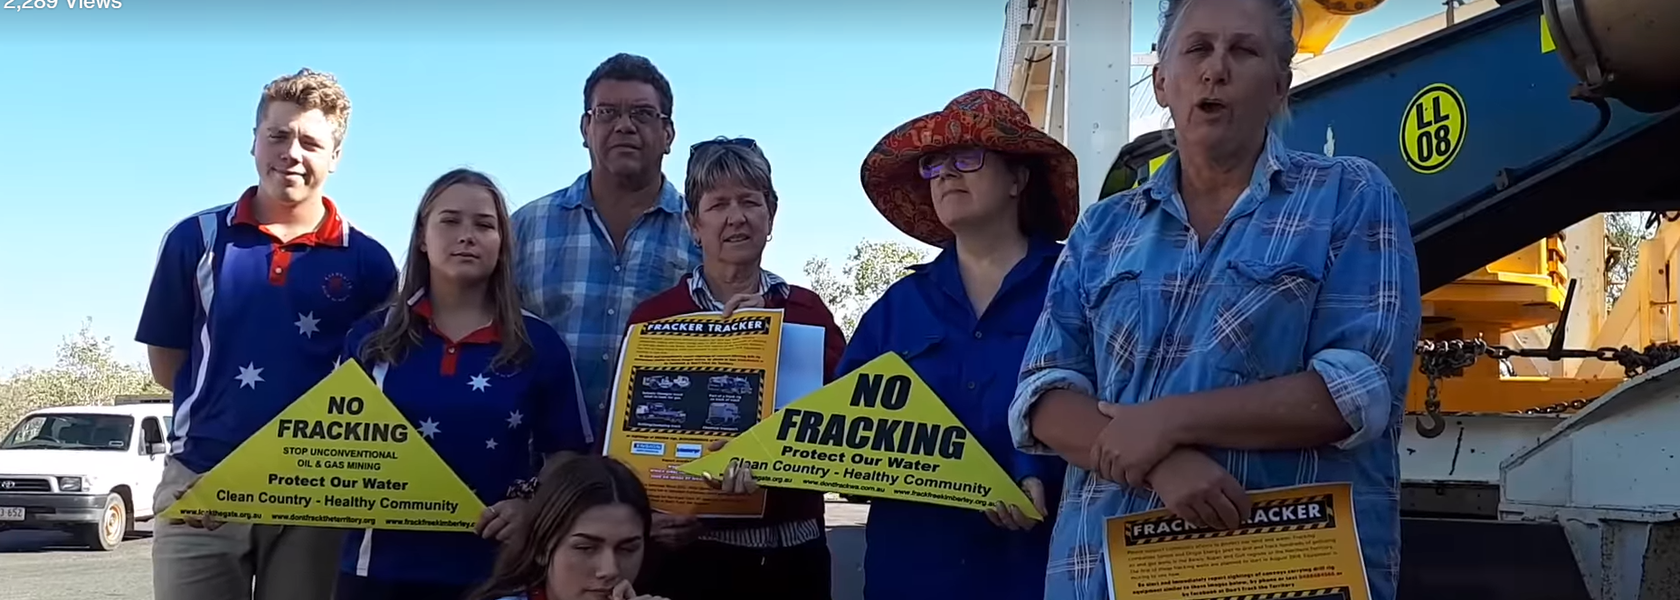 Protesters attempt to disrupt rig mobilisation in NT